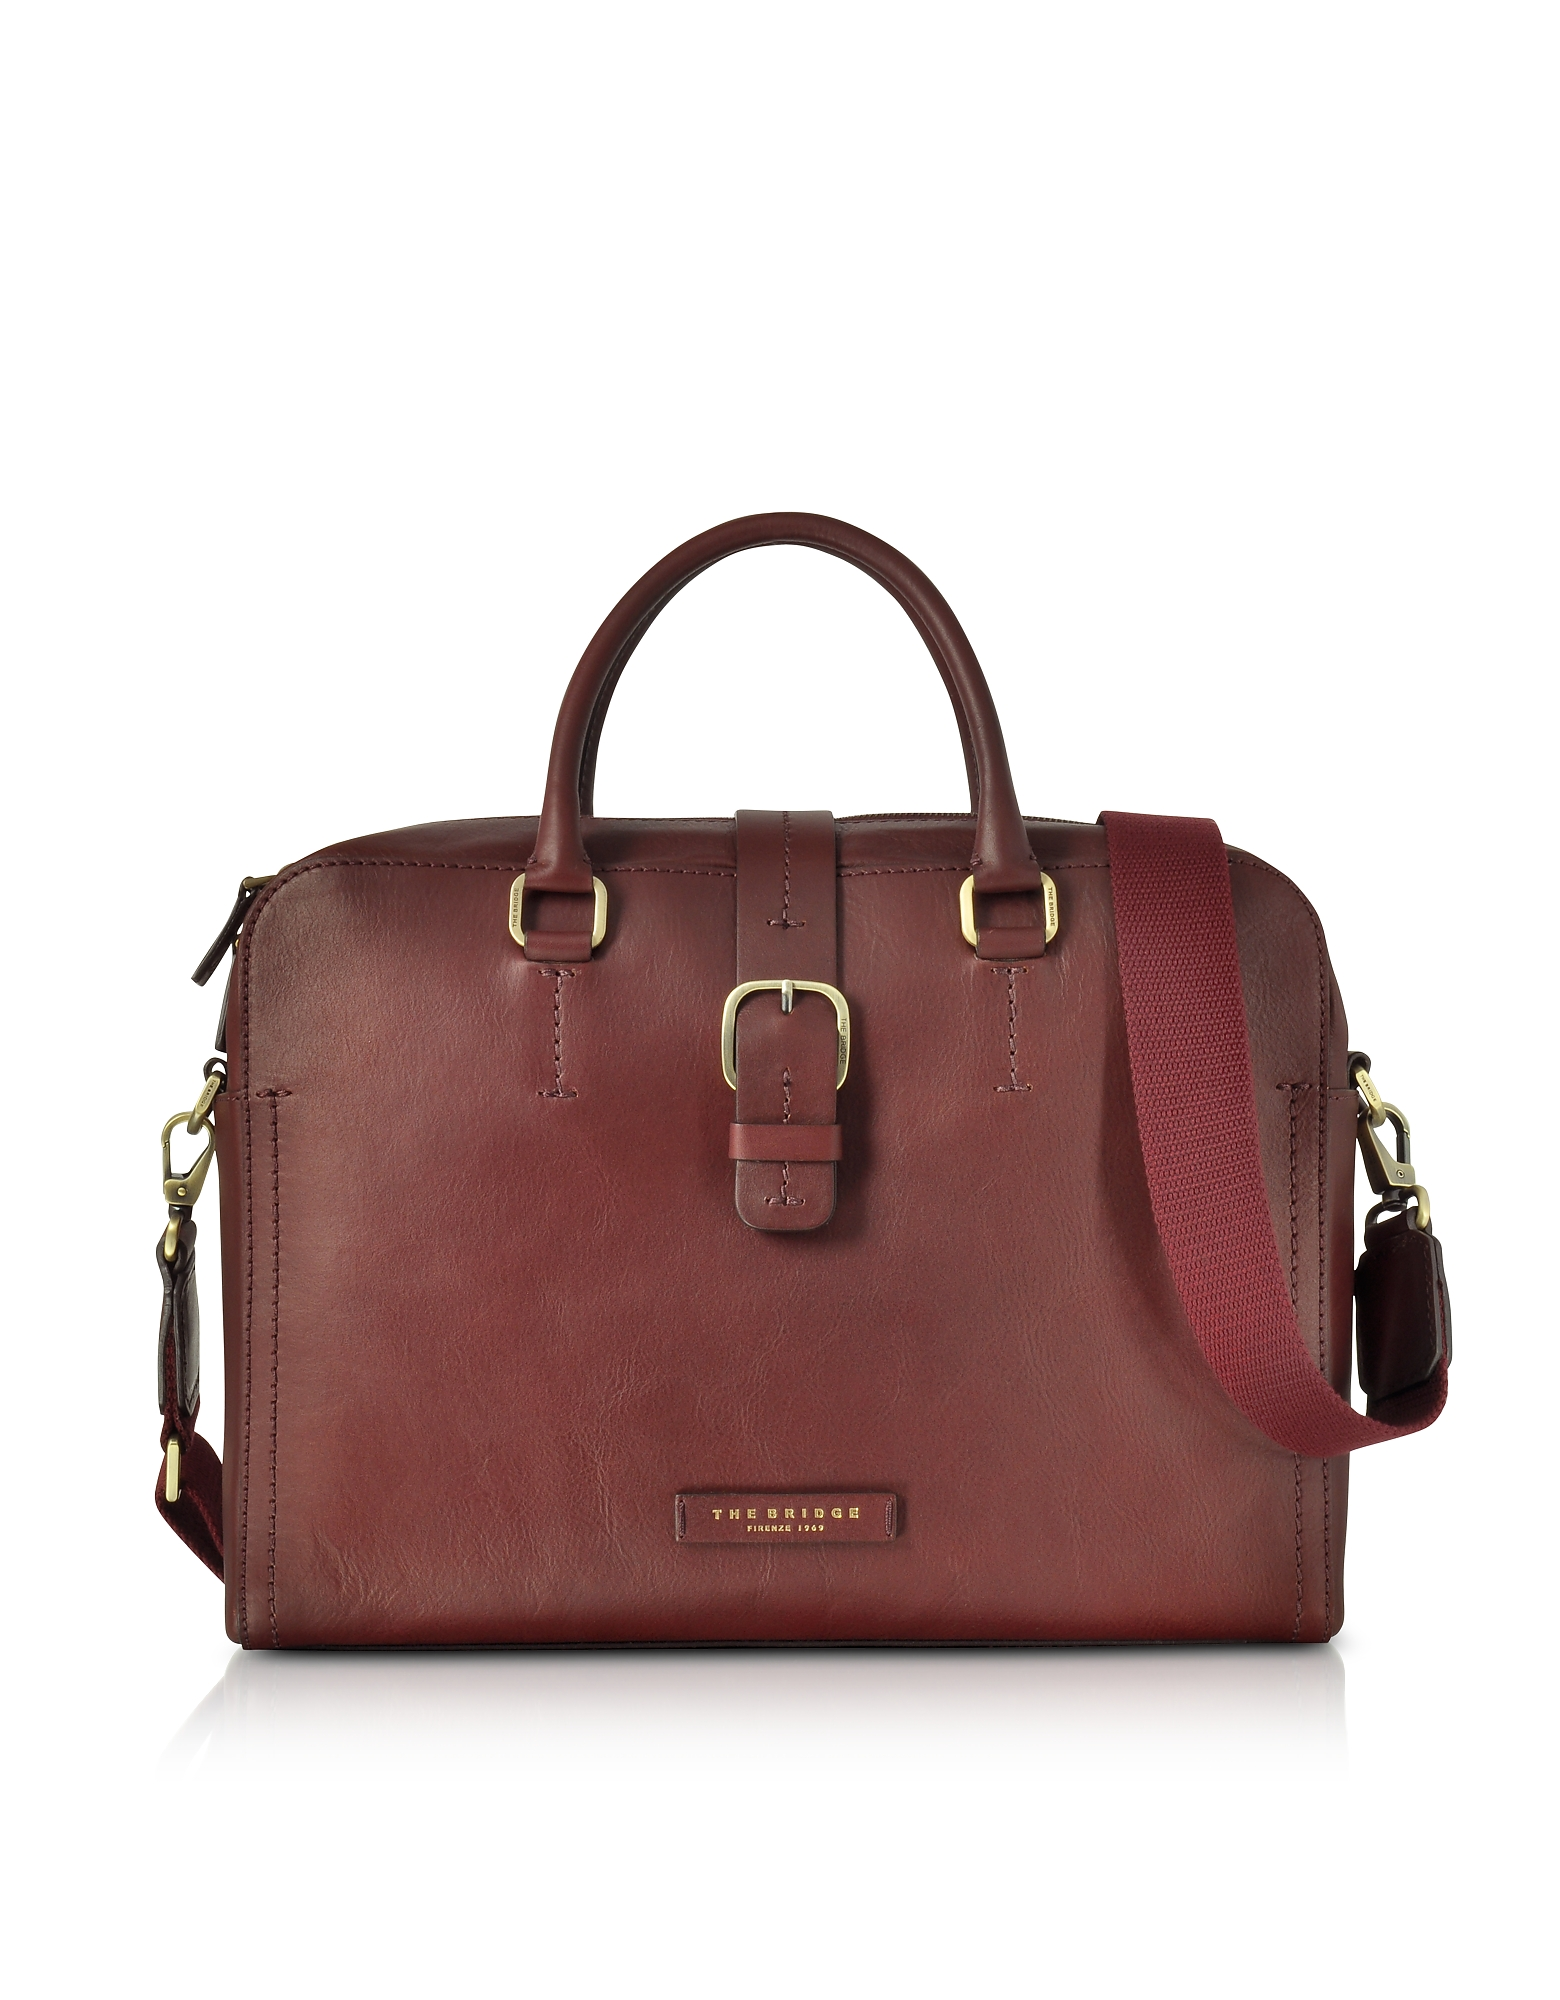 Borsa Porta Laptop e Tablet in Pelle Bordeaux con Tracolla